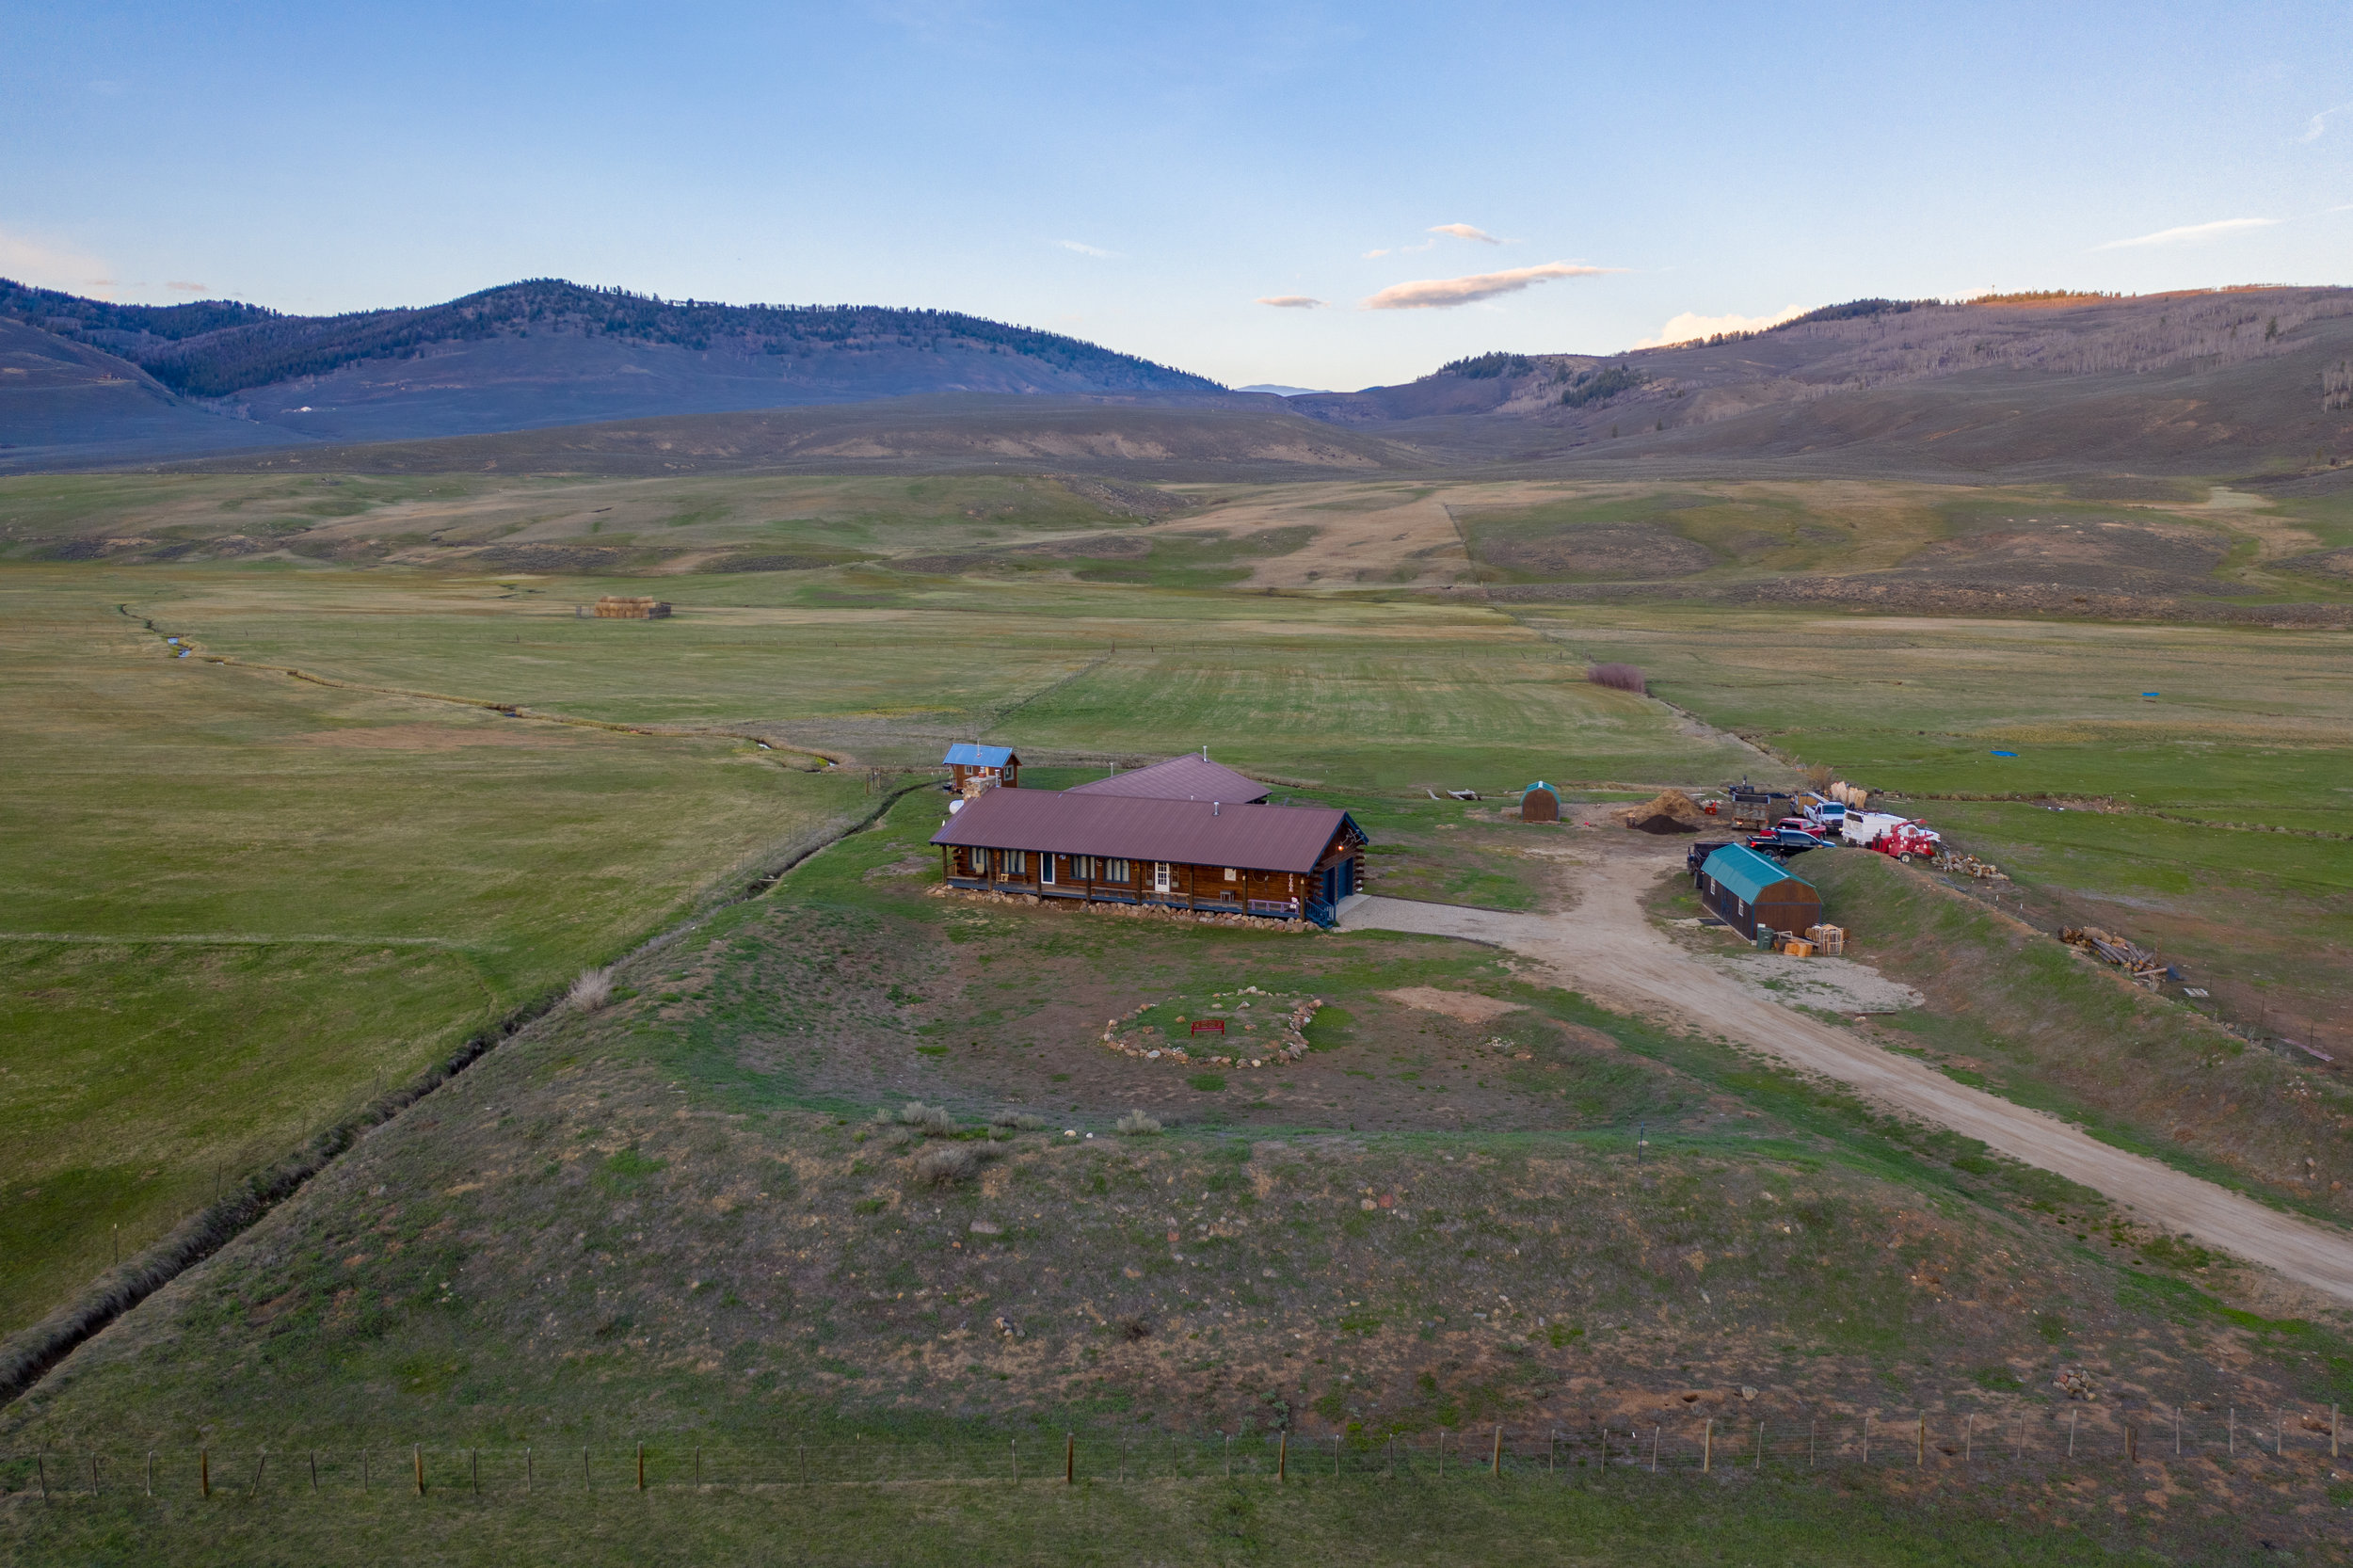 ariel-view-home-and-land-for-sale-gunnison-county.jpg